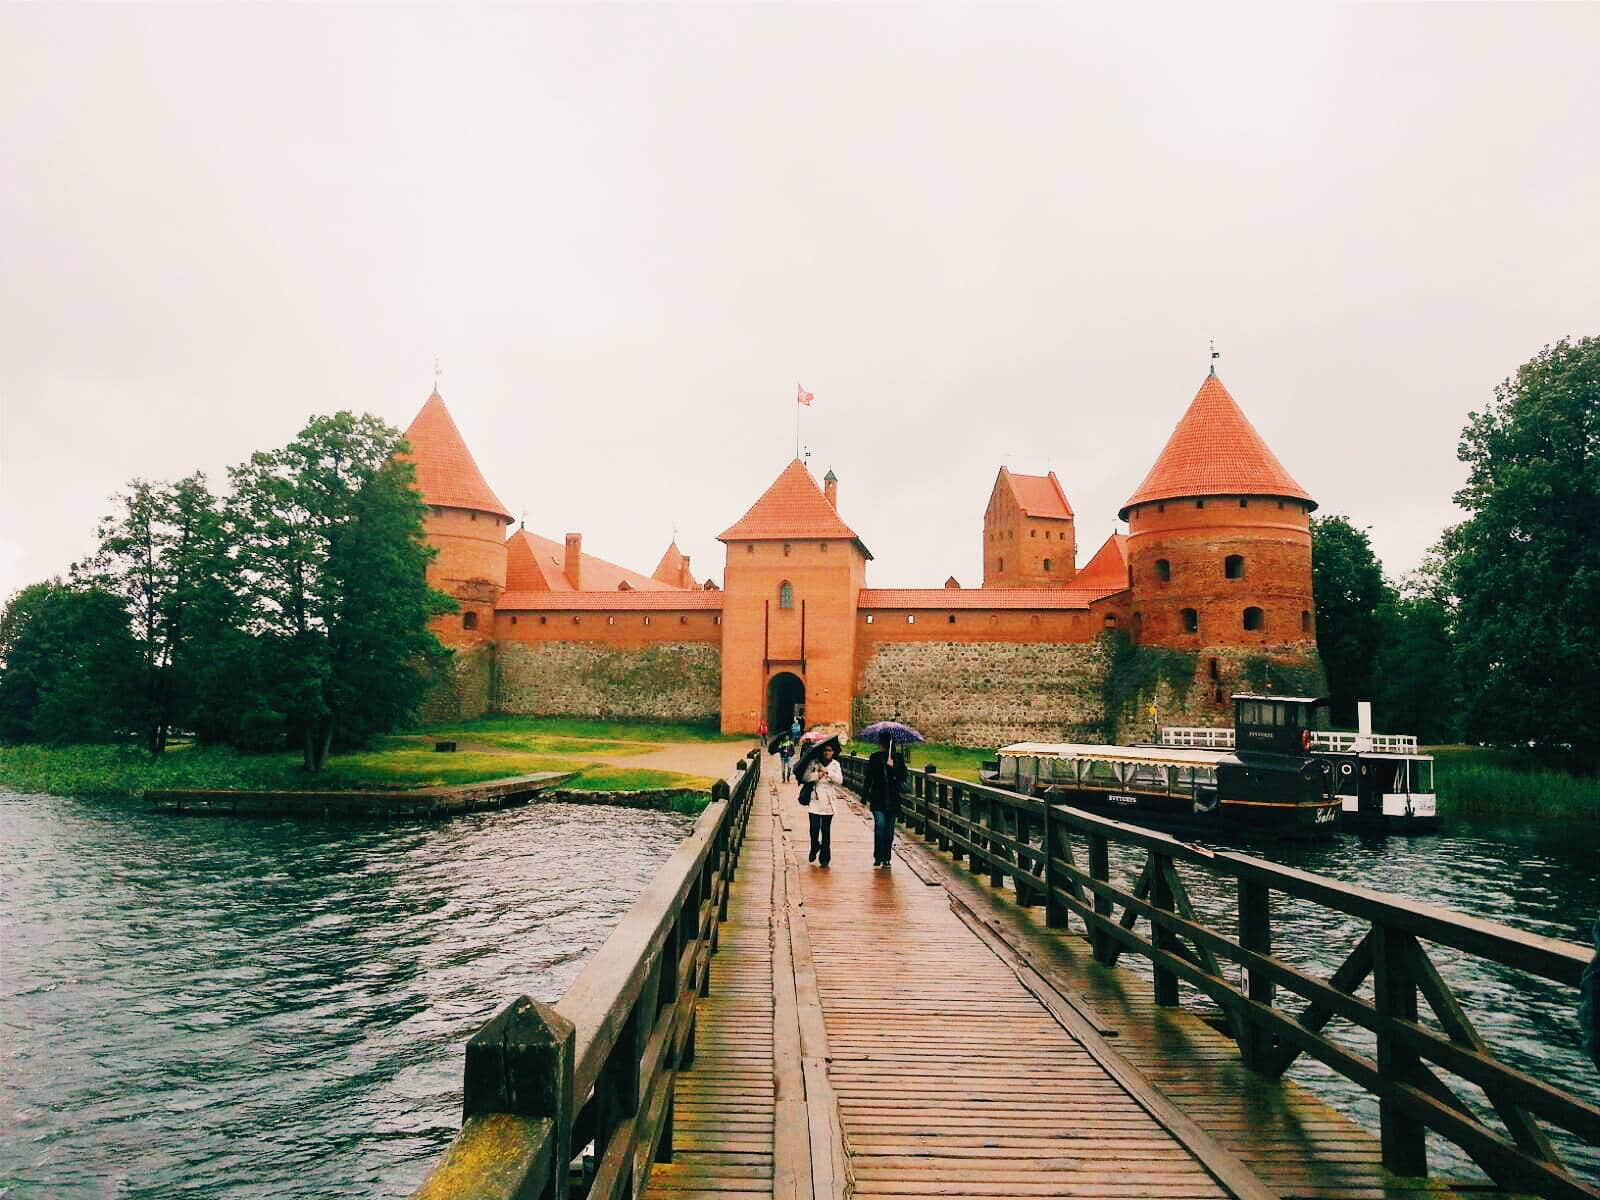 Trakai Lithuania is a very touristic spot in the country.